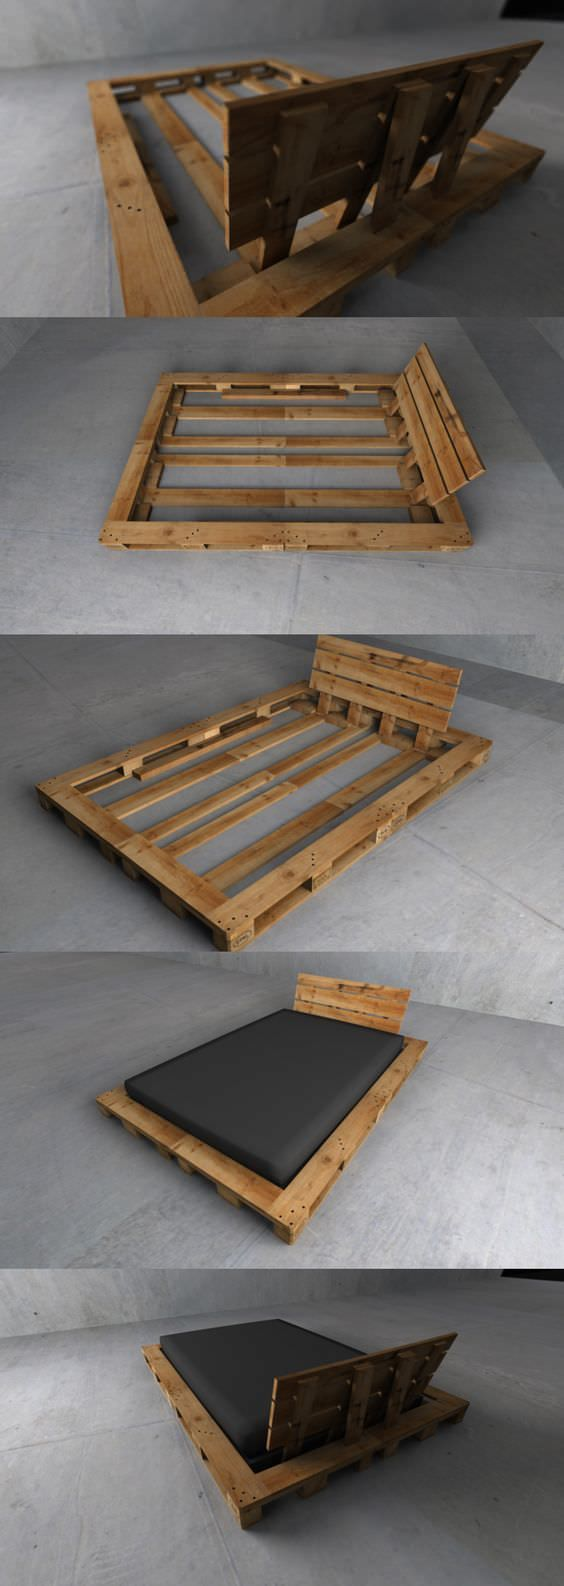 Single pallet bed frame - 62 Creative Recycled Pallet Beds You Ll Never Want To Leave Page 6 Of 6